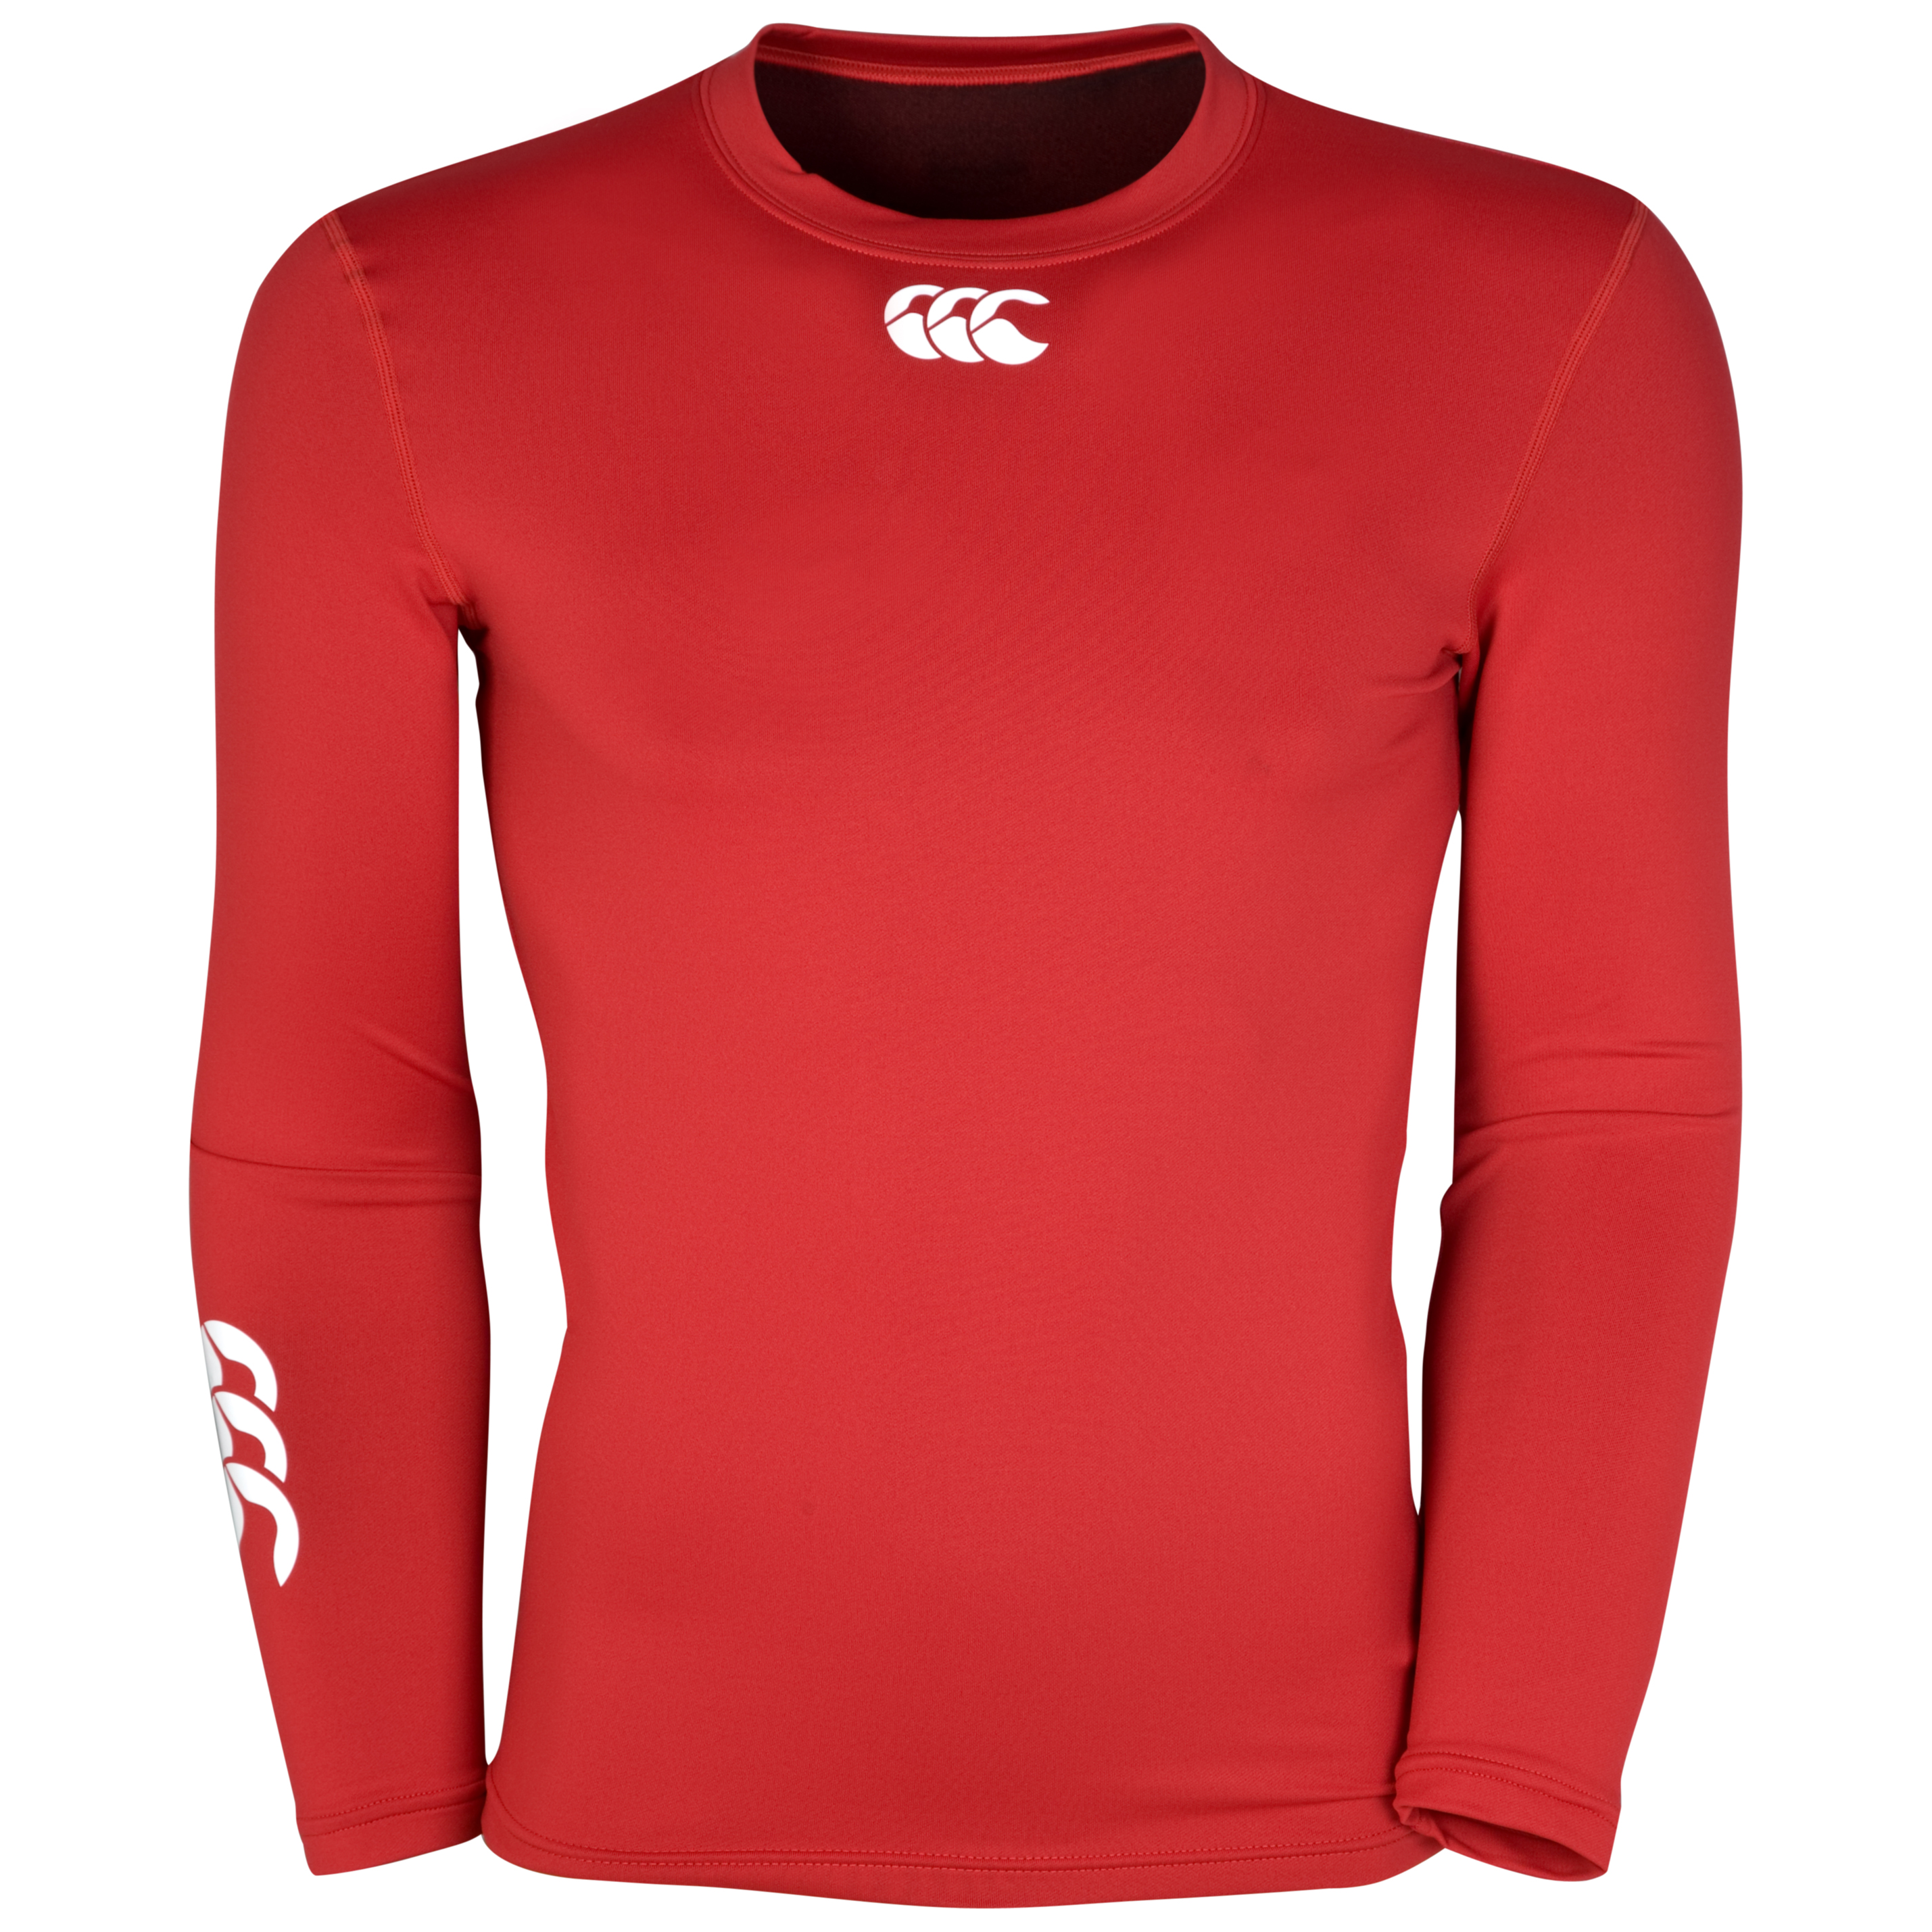 Canterbury Cold Long Sleeve Baselayer Top - Kids - Red